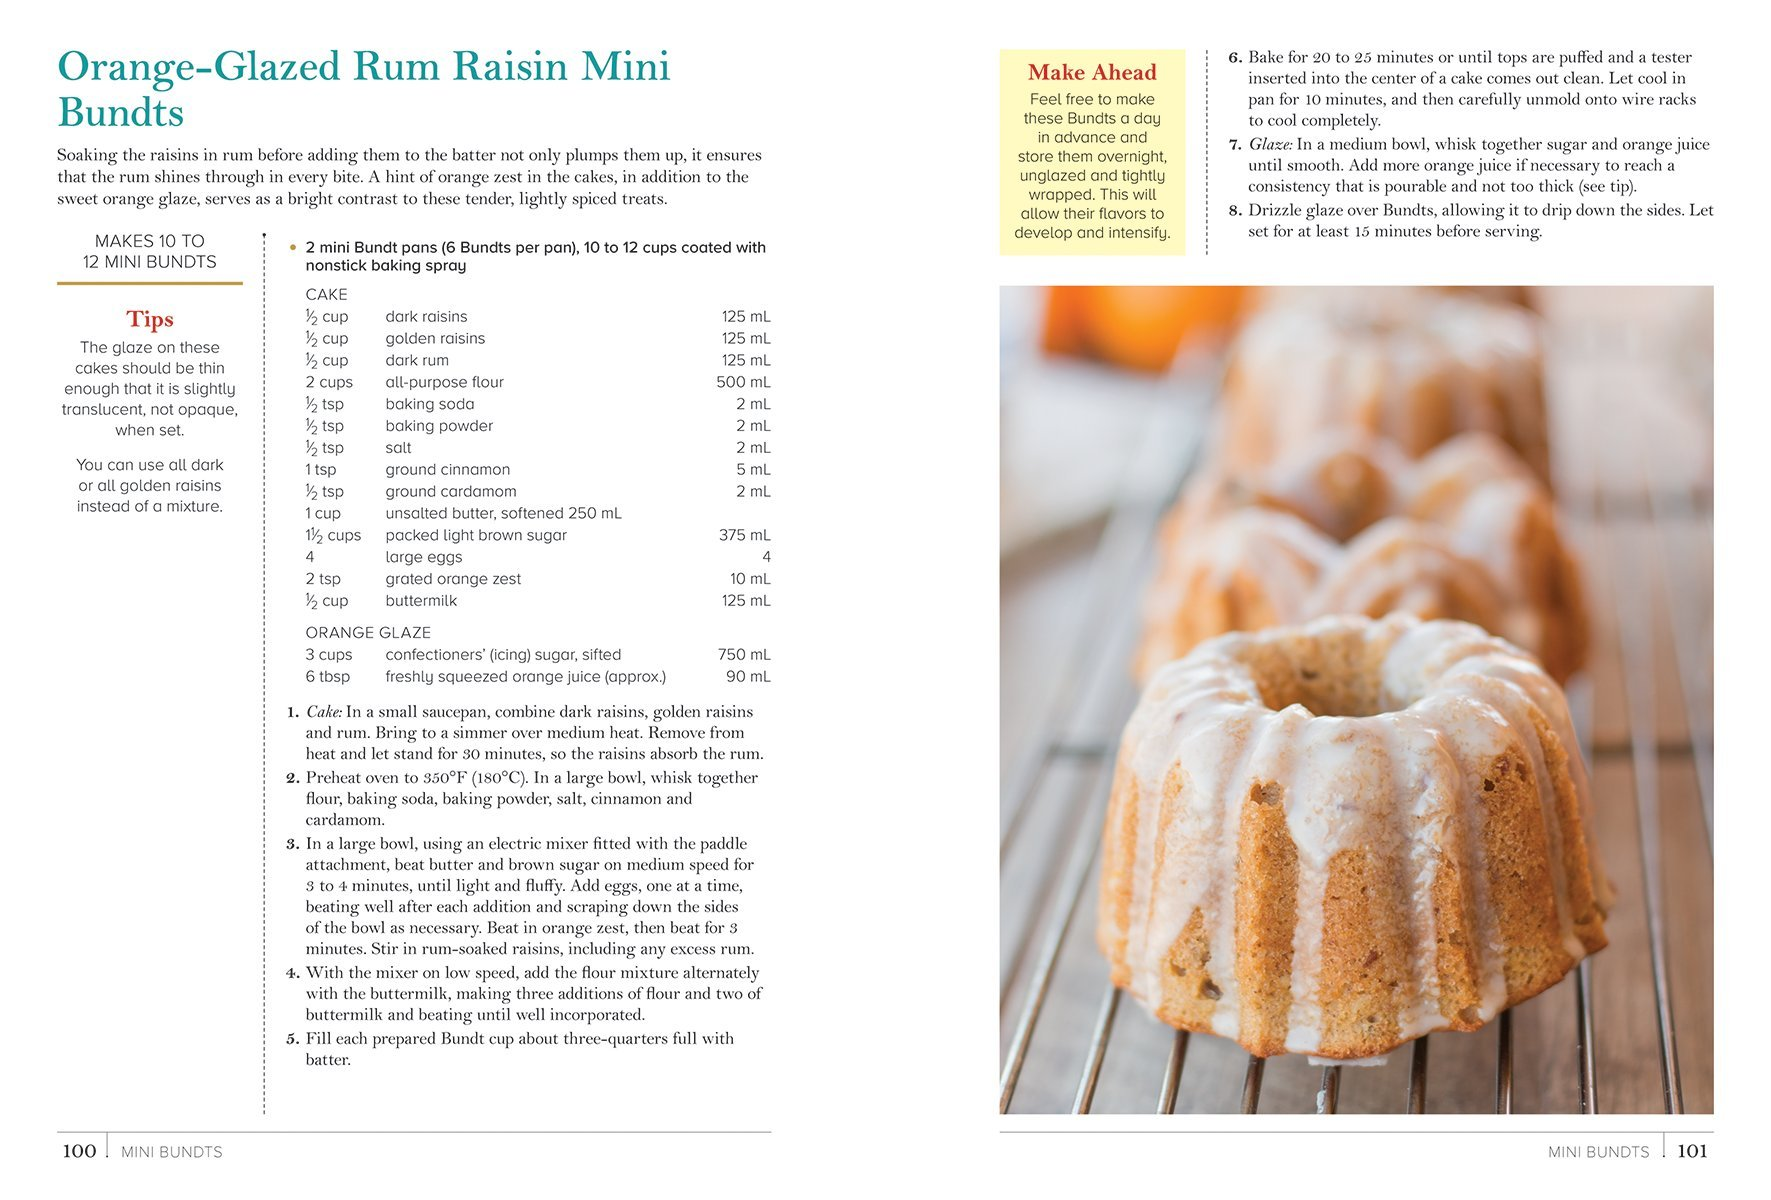 Beautiful Bundts: 100 Recipes for Delicious Cakes and More by Robert Rose